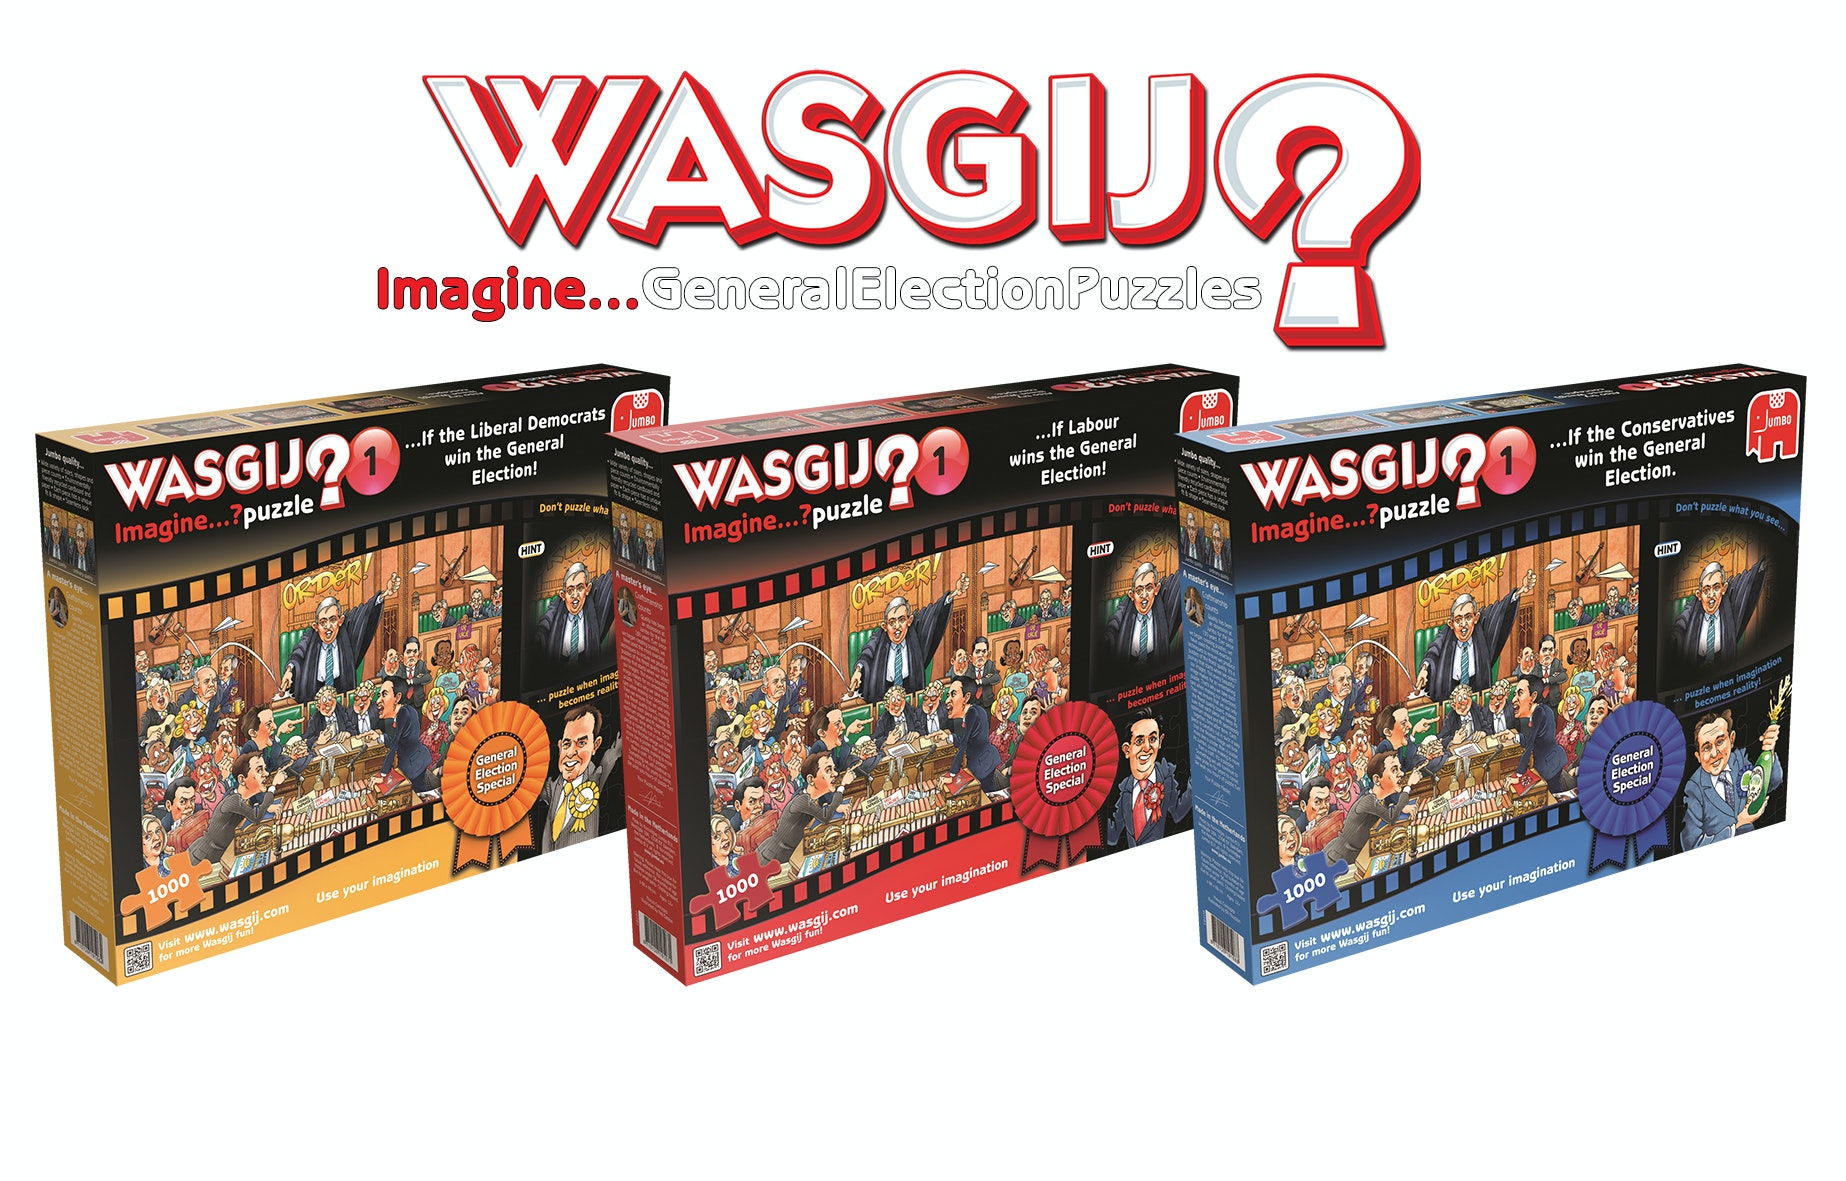 Wasgij election puzzle product images and logo 1